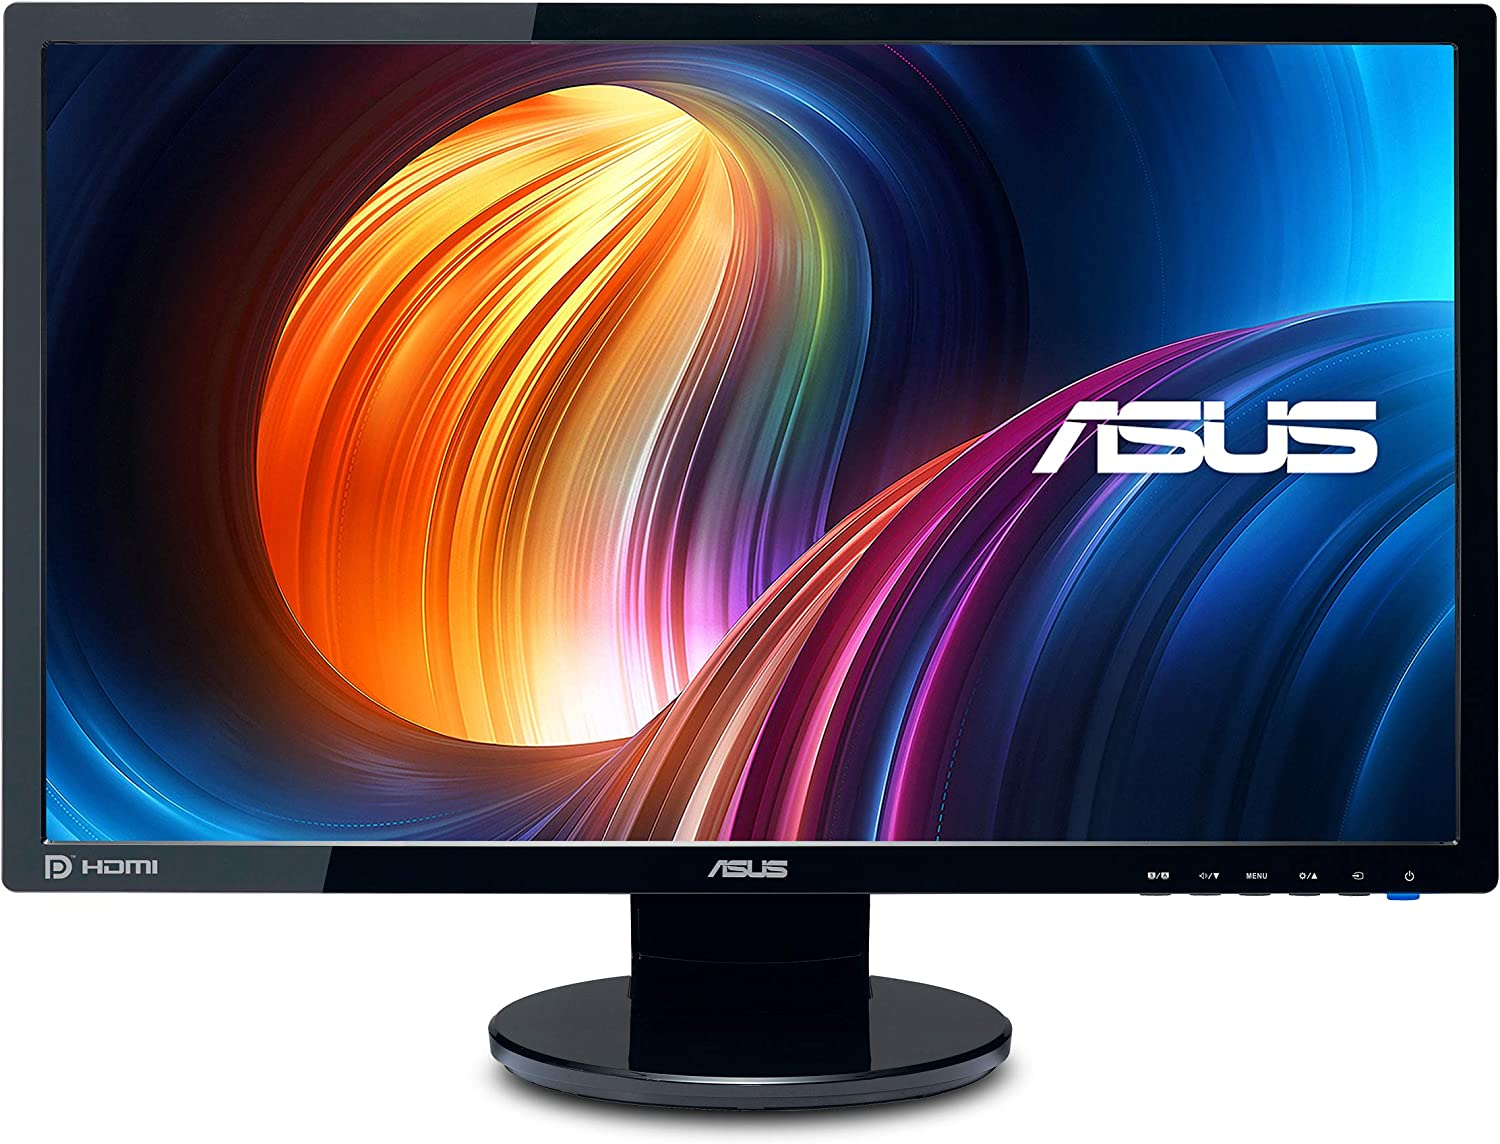 Amazon Com Asus Ve248h 24 Full Hd 1920x1080 2ms Hdmi Dvi Vga Back Lit Led Monitor Black Computers Accessories